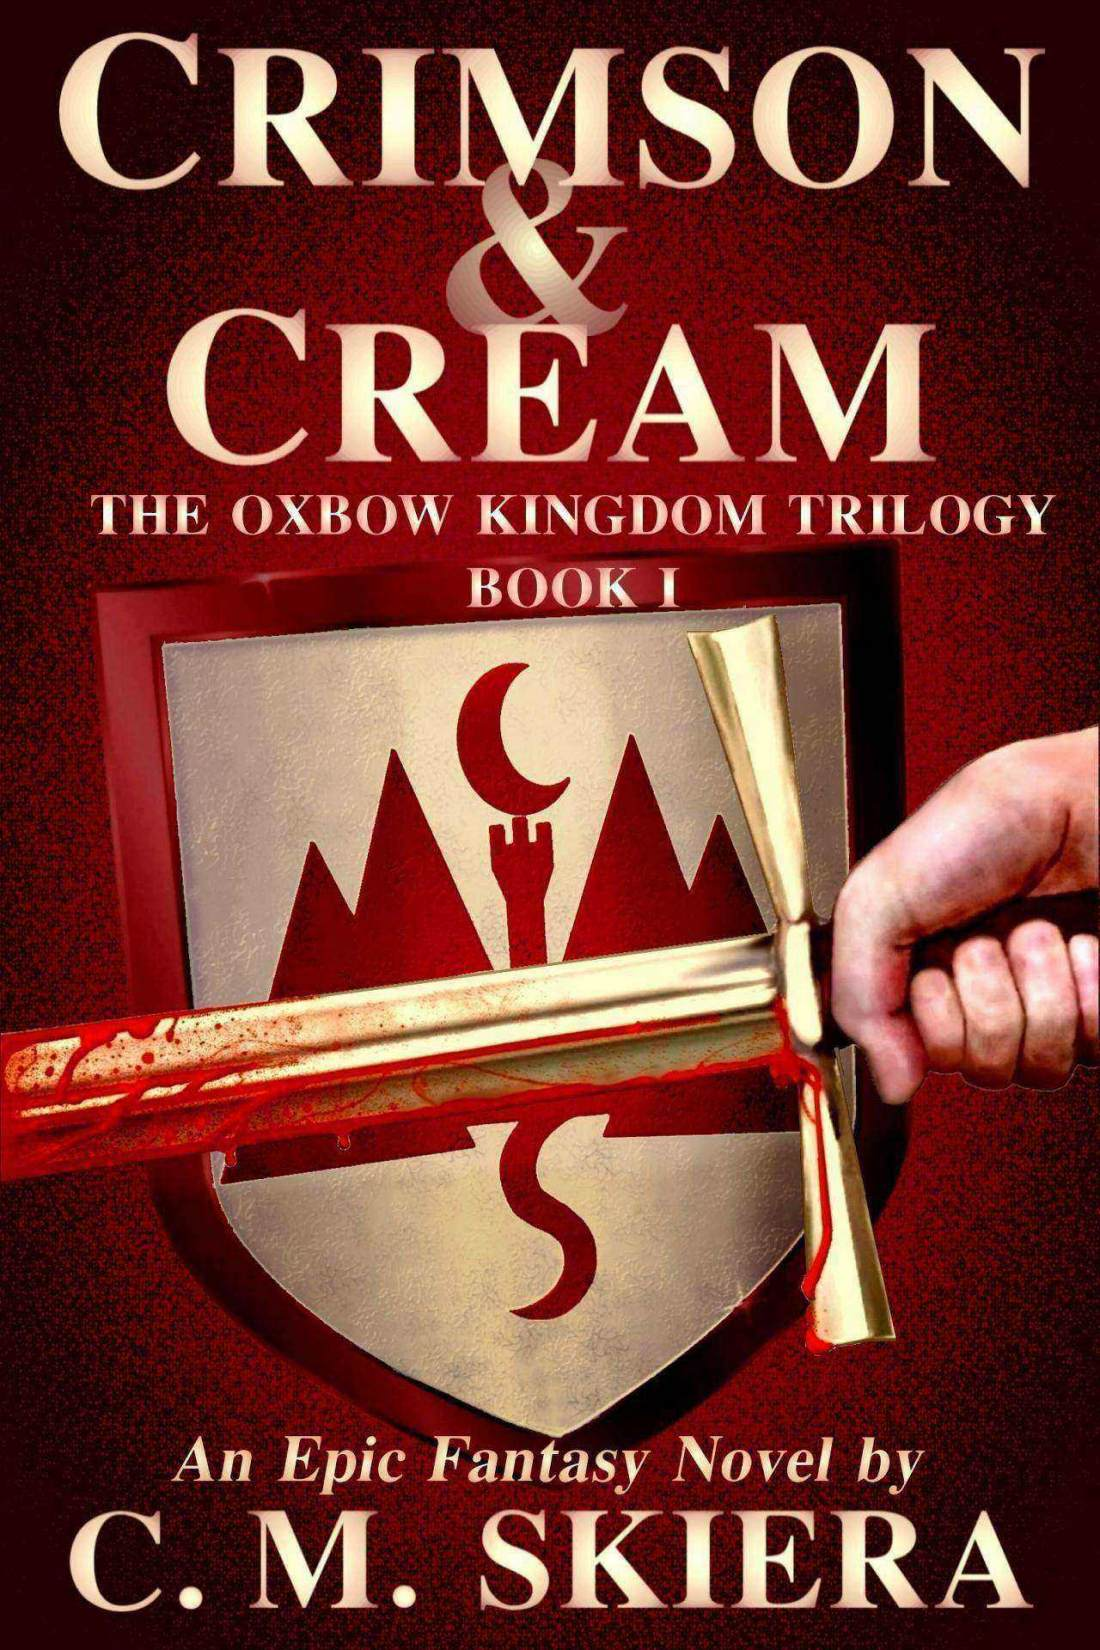 Crimson & Cream (The Oxbow Kingdom Trilogy Book 1)